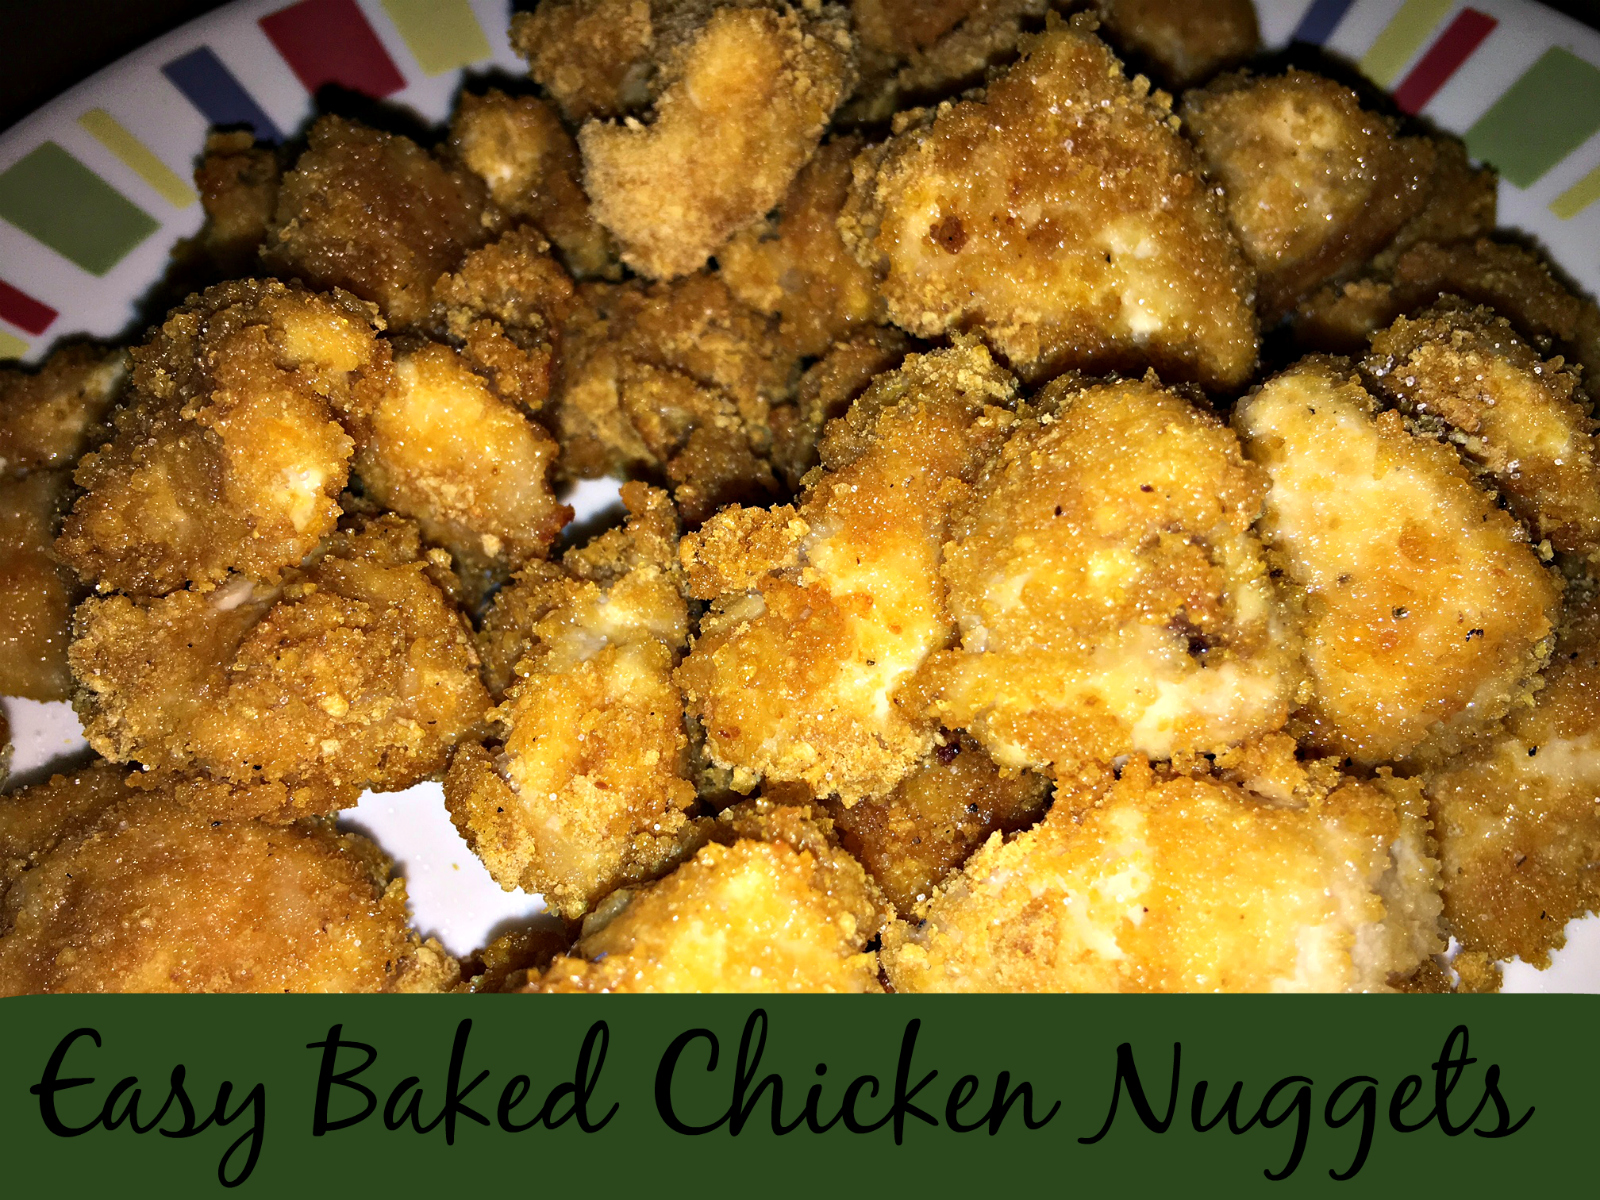 Easy Baked Chicken Nuggets - The Neighborhood Moms